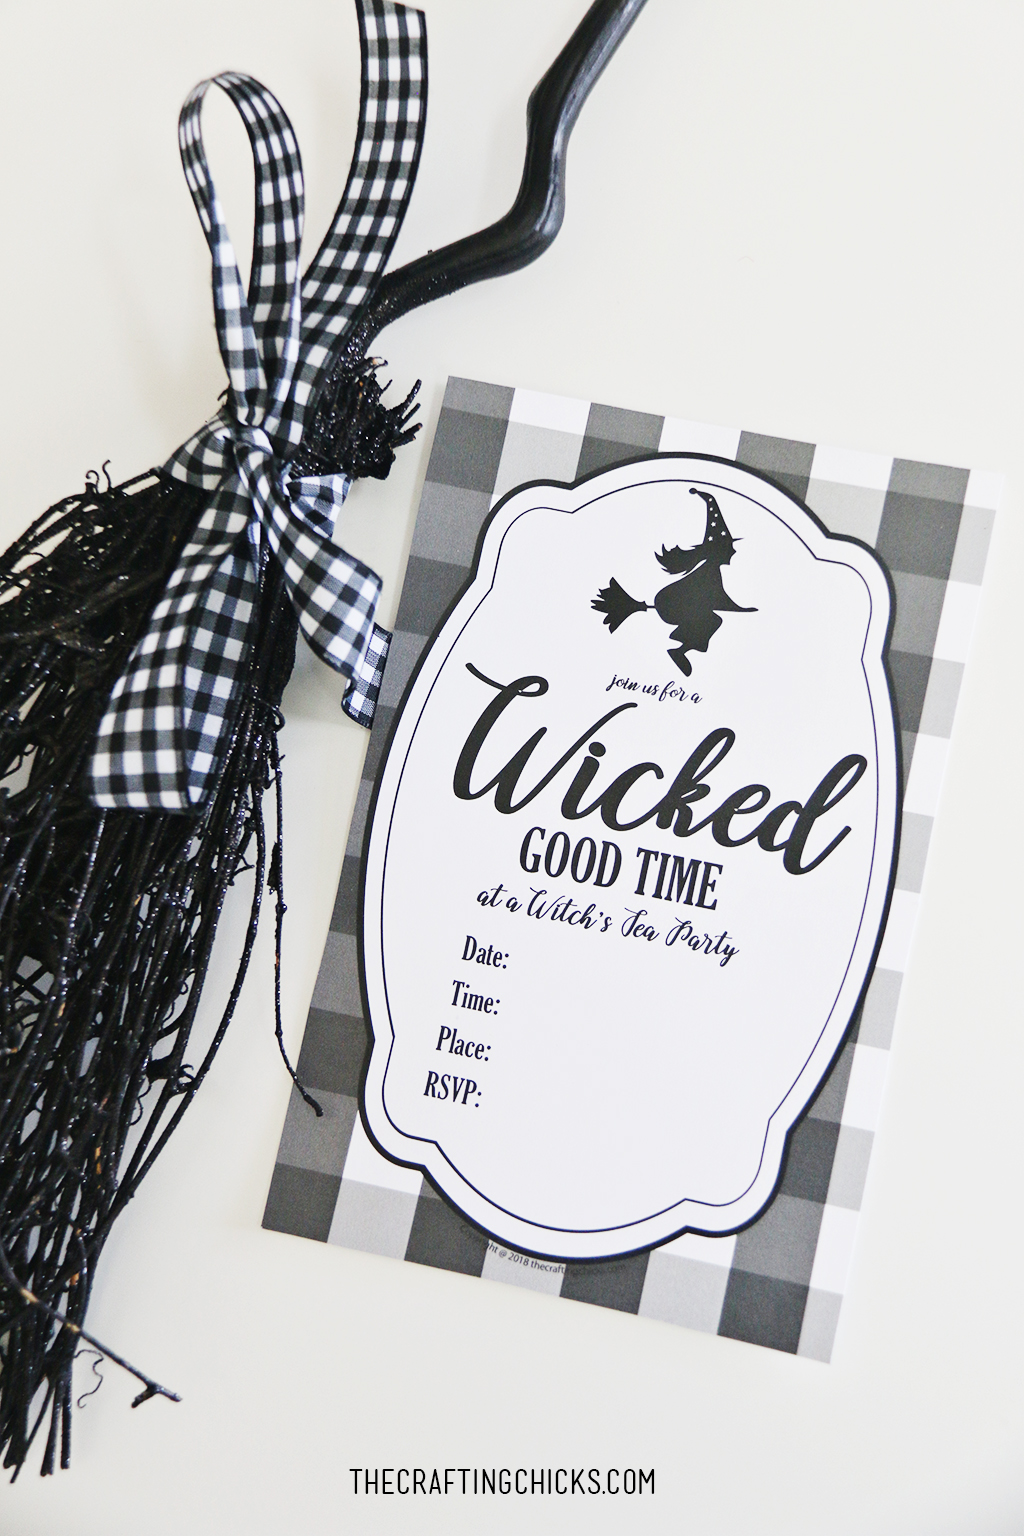 image regarding Tea Party Printable named Witch Tea Social gathering No cost Printable Invite - The Writing Chicks